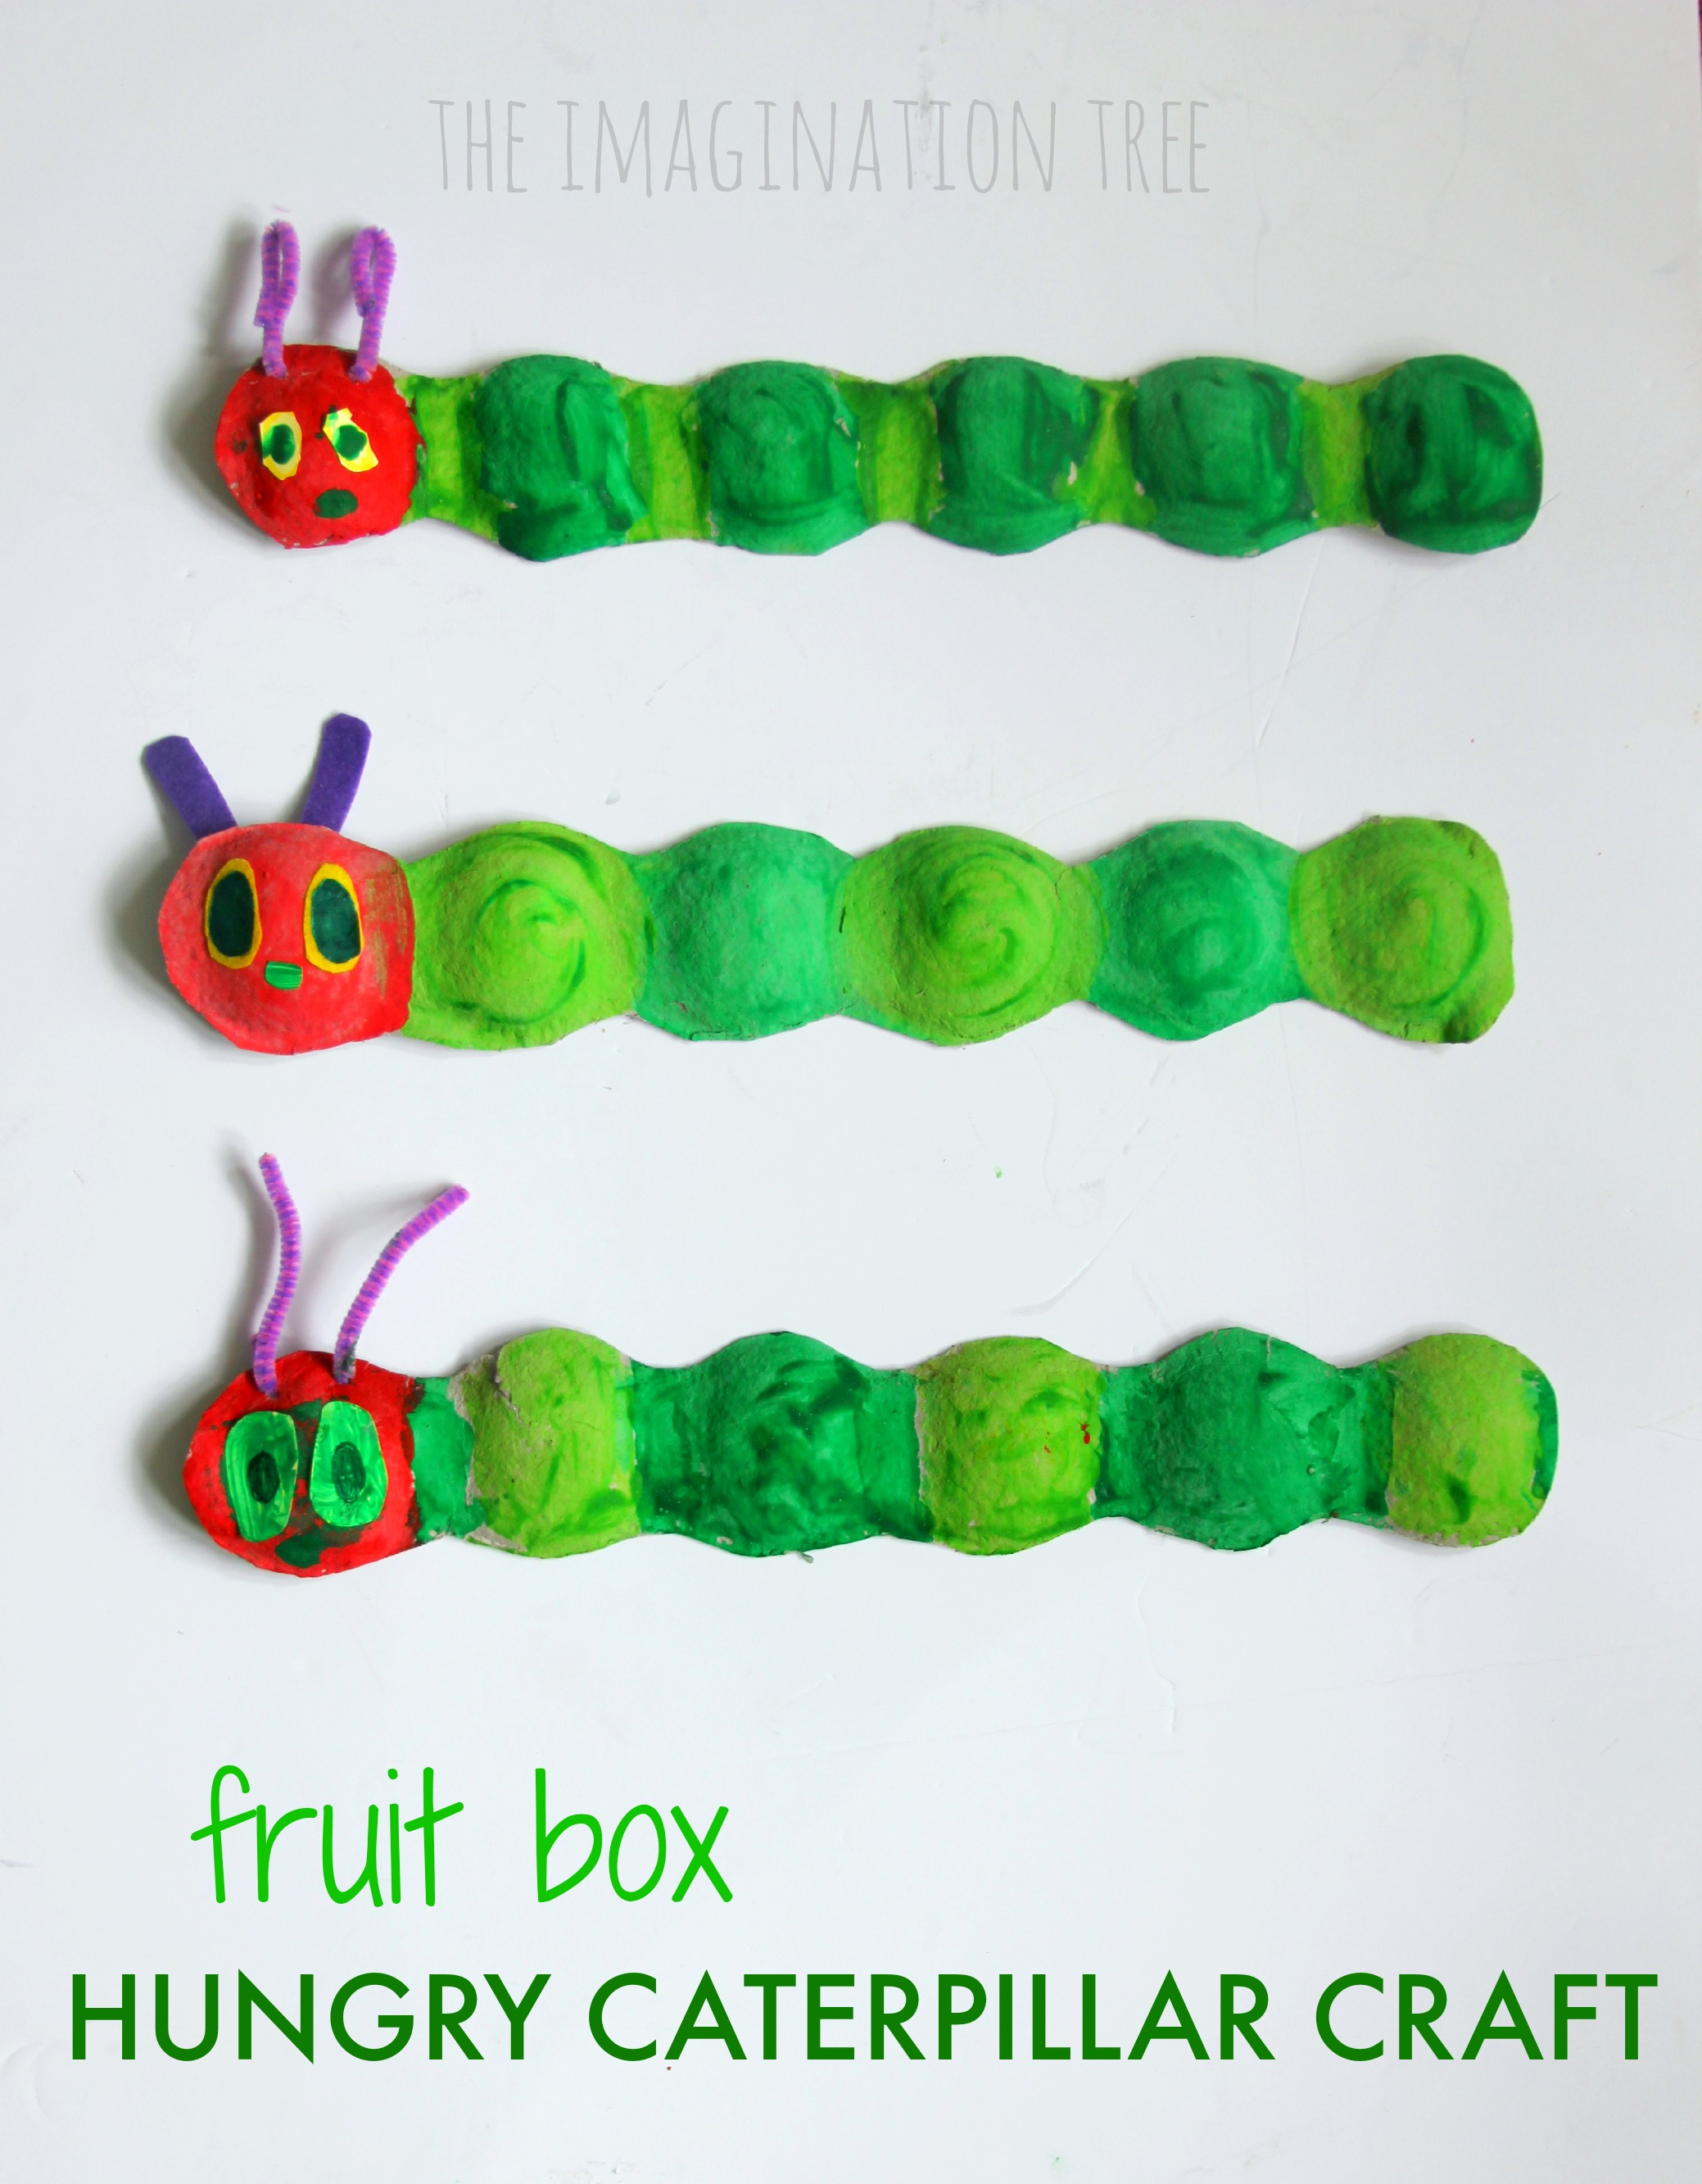 Fruit box hungry caterpillar craft the imagination tree for Caterpillar crafts for preschoolers